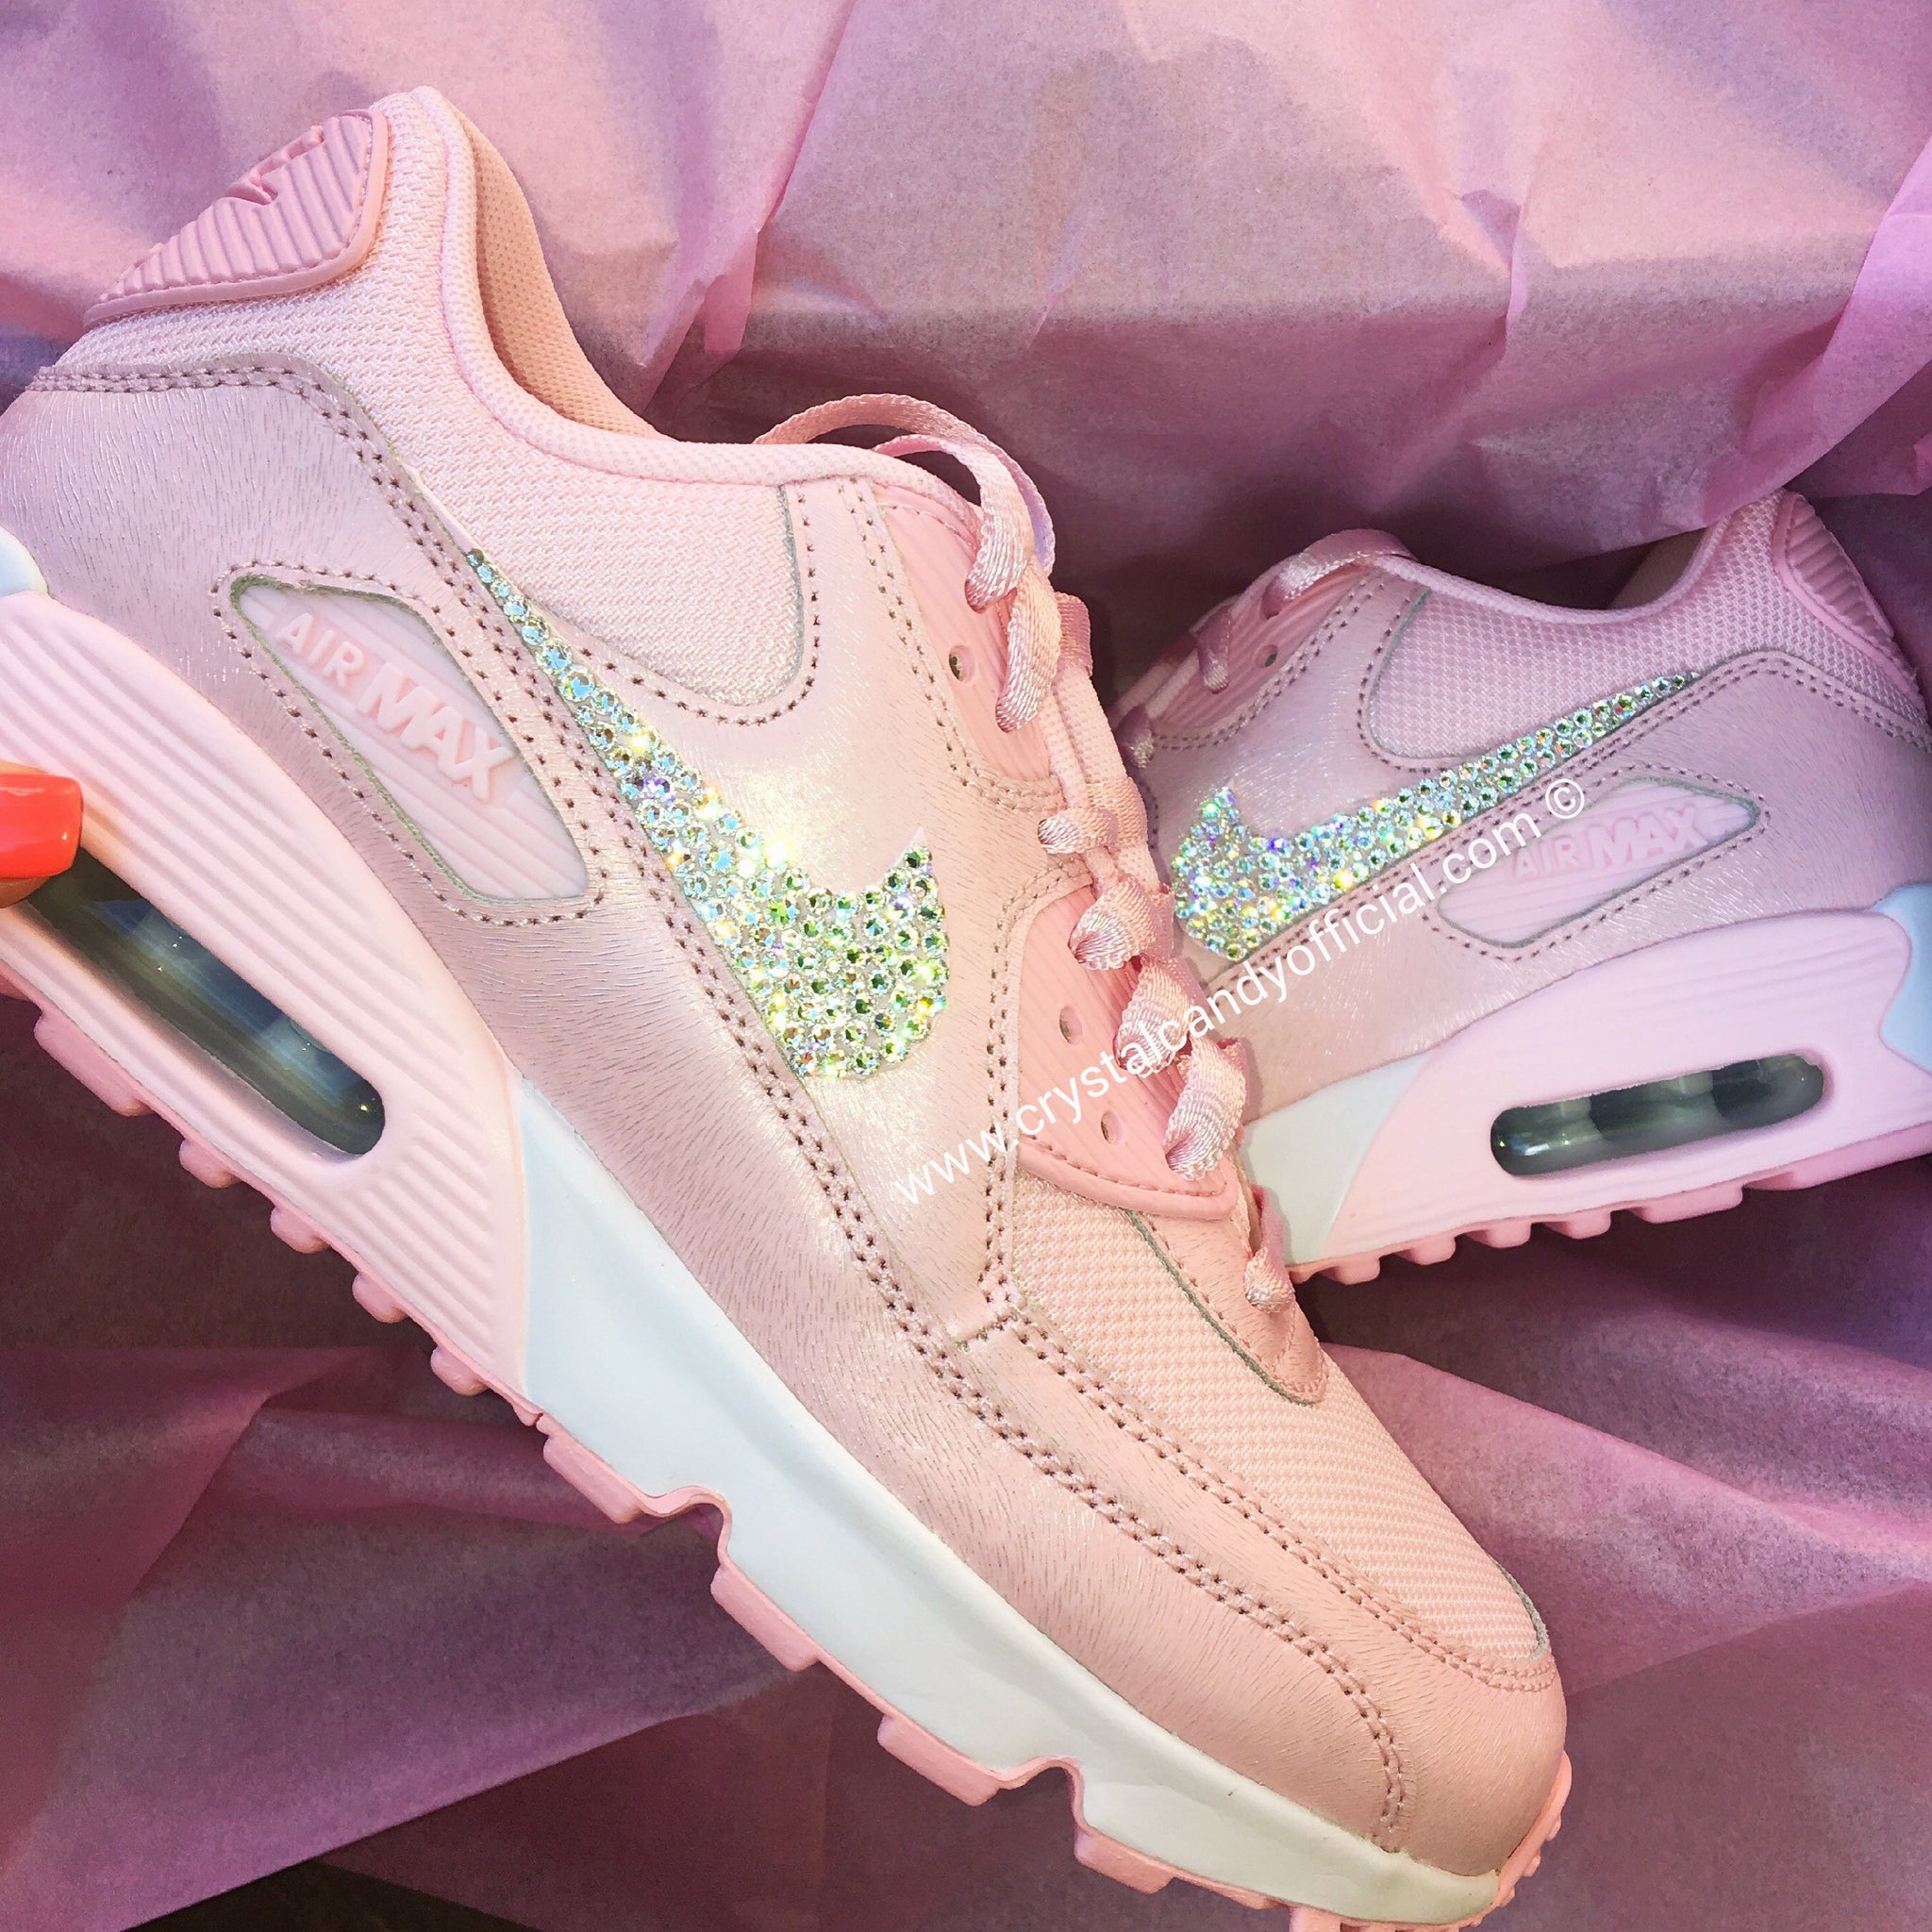 80fd9411c063 Crystal Nike Air Max 90 s - Crystal Candy Limited